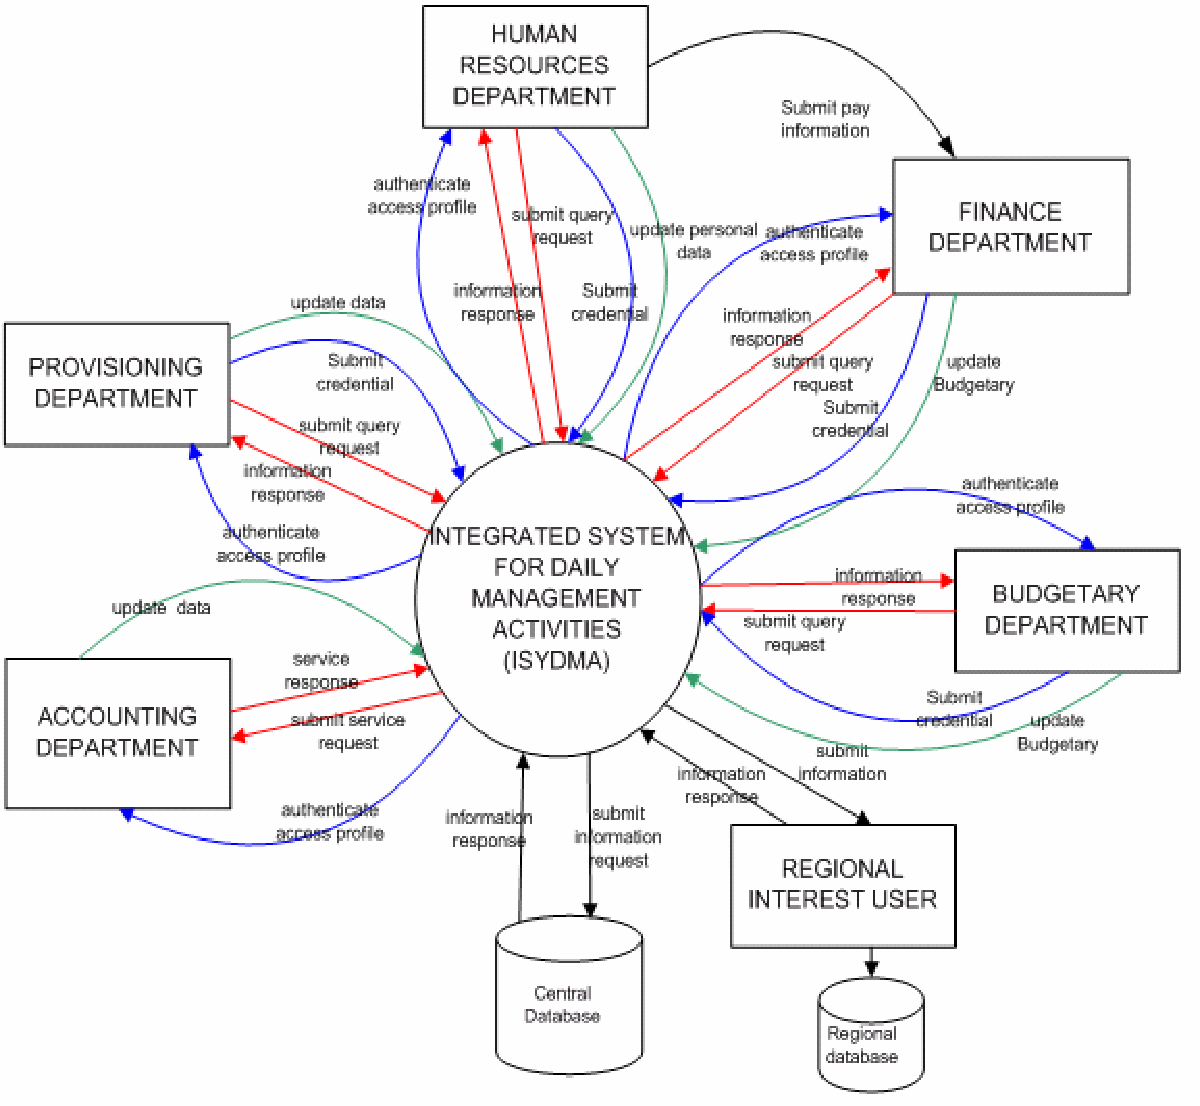 Pdf Design And Implementation Of A Database For An Integrated System For Daily Management In An Industrial And Commercial Organization Semantic Scholar